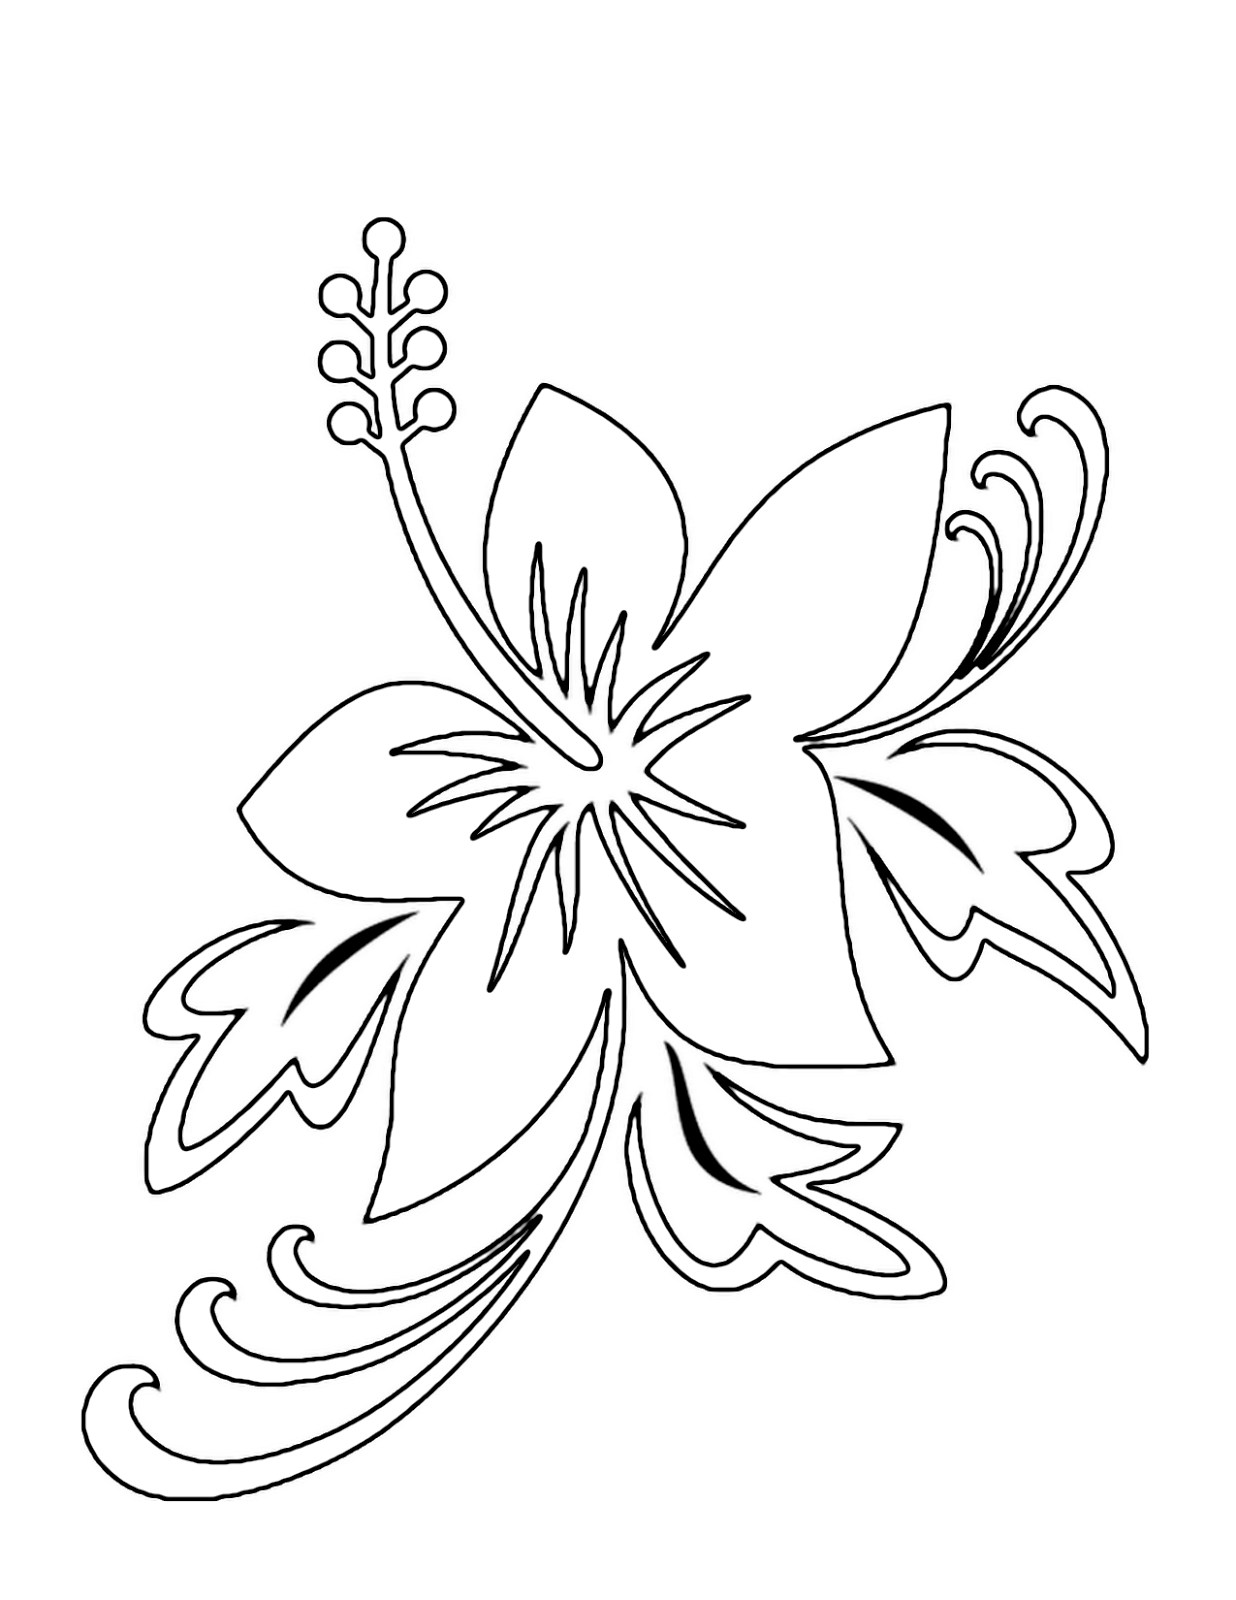 Coloring pages for adults flowers for Coloring pages for adults difficult flower